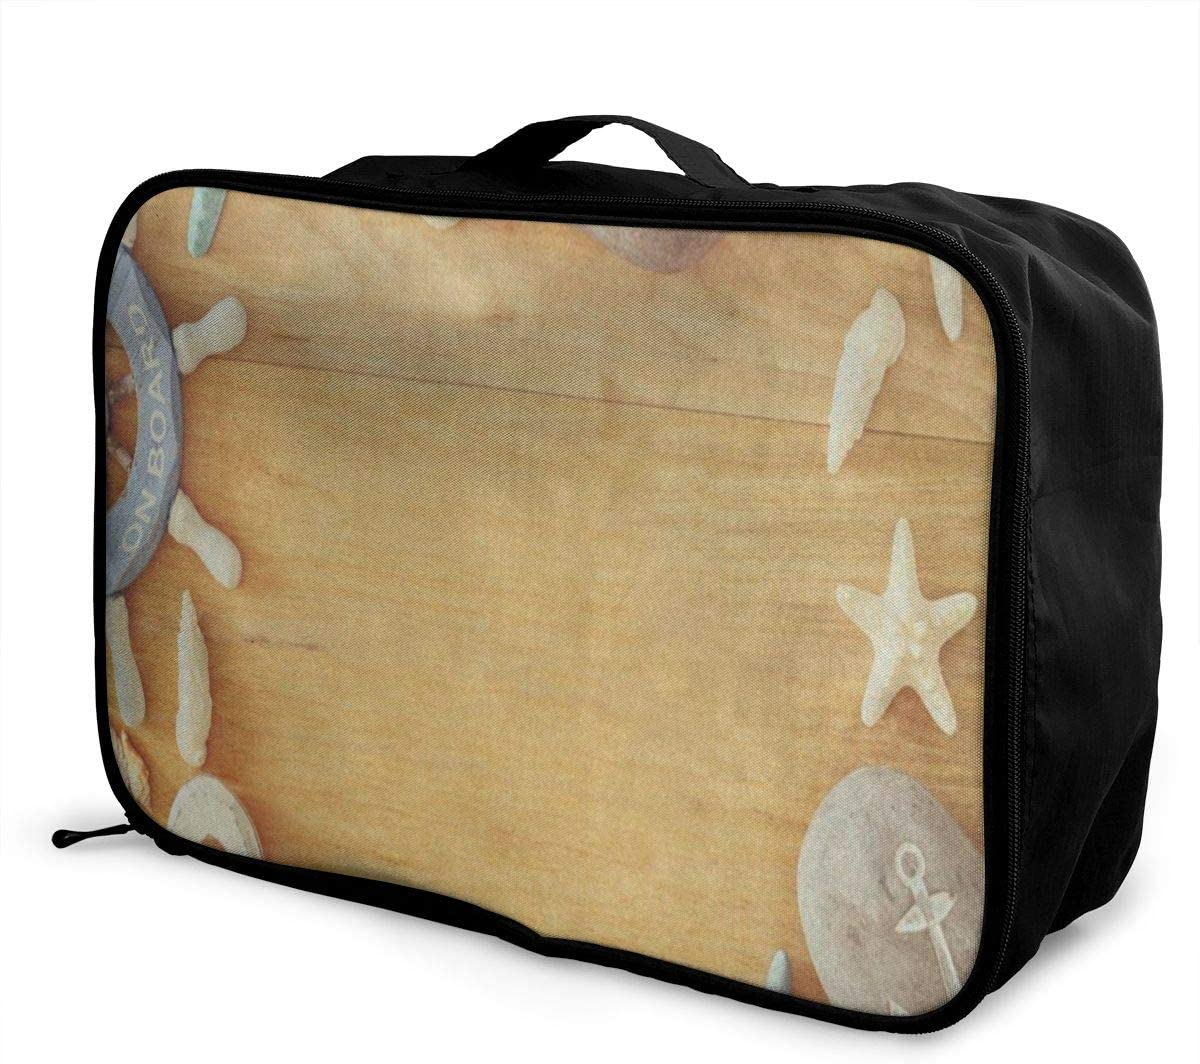 Travel Bags Nautical Beach Sand Starfish Wheel Shell Wooden Portable Foldable Special Trolley Handle Luggage Bag